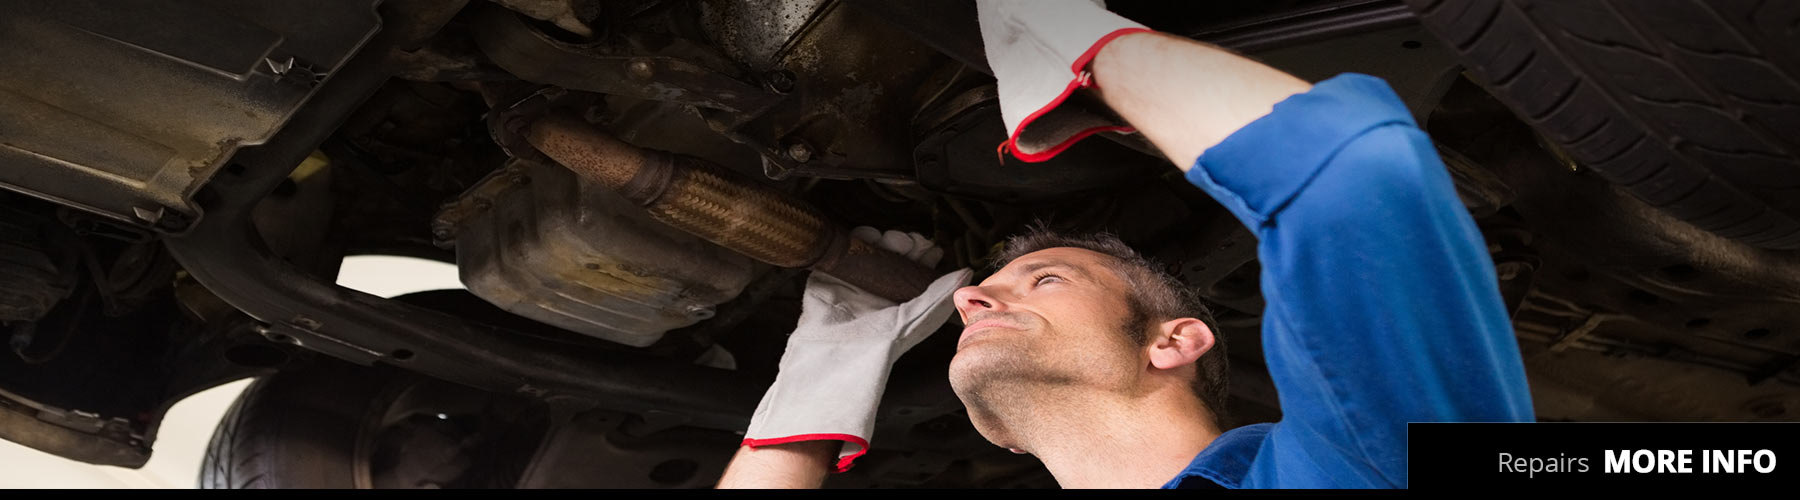 Machanic holding exhaust to repair vehicle